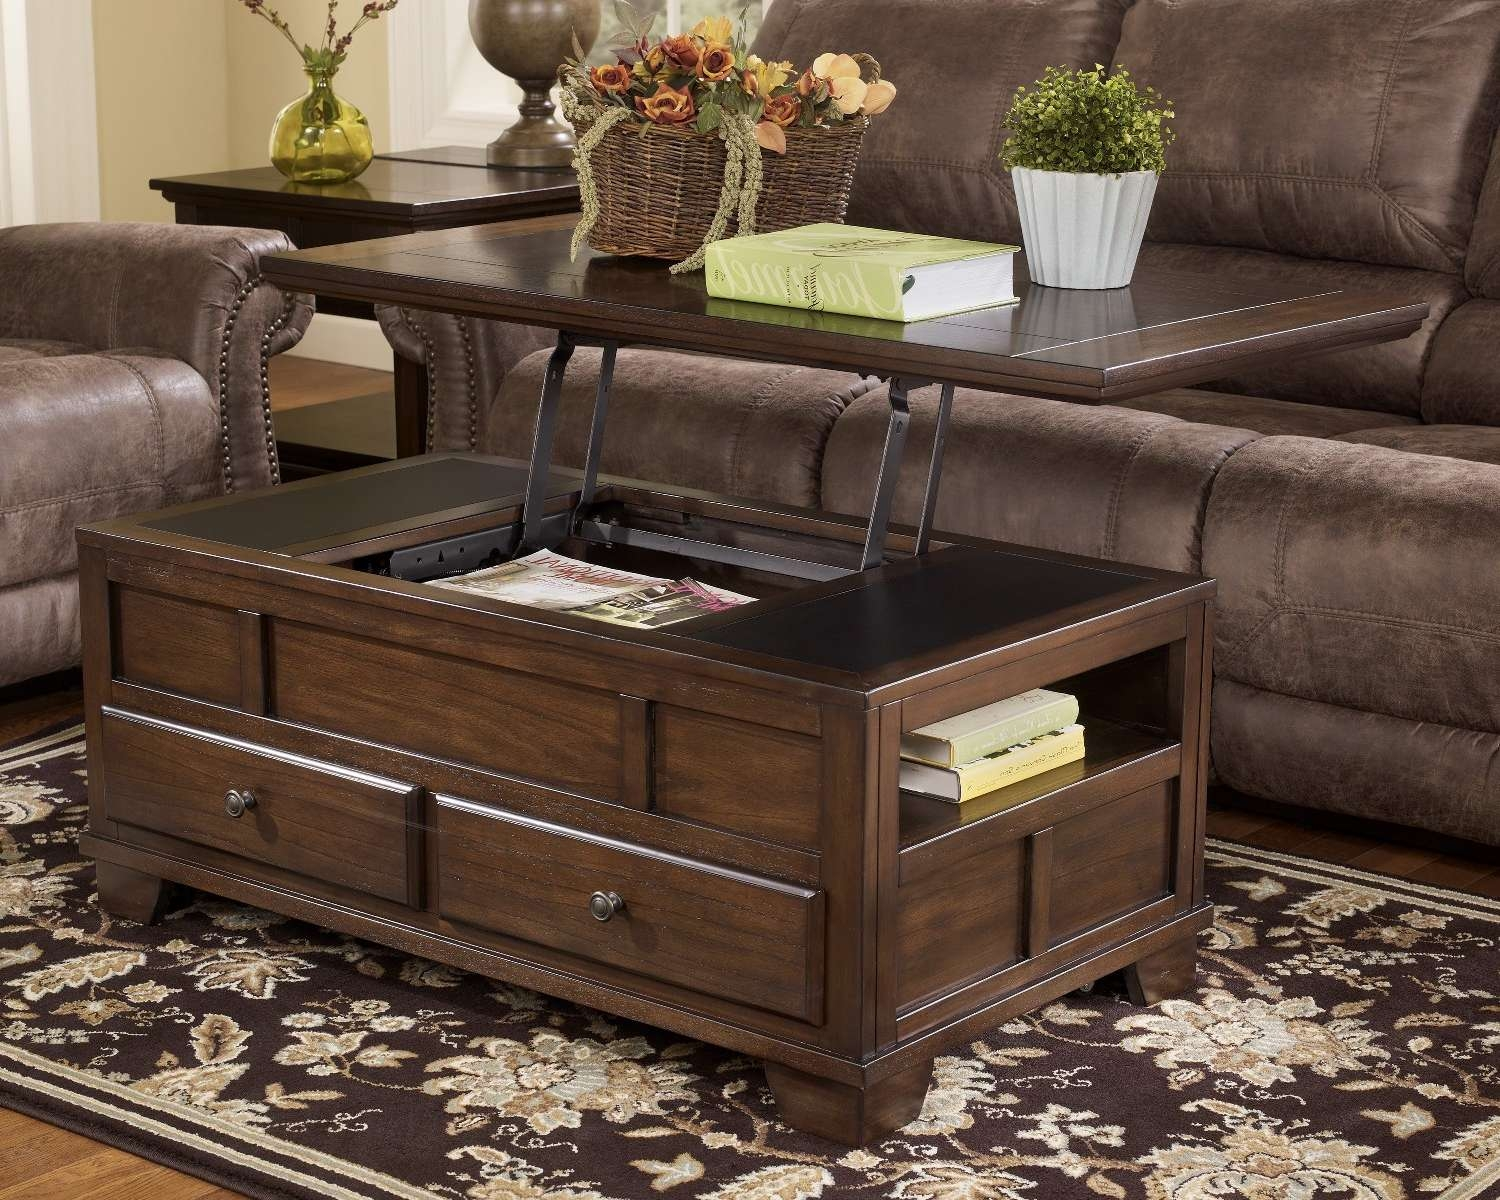 Coffee Tables : Storage Chest Coffee Table Trunks Design Ideas Pertaining To Popular Trunk Chest Coffee Tables (View 20 of 20)